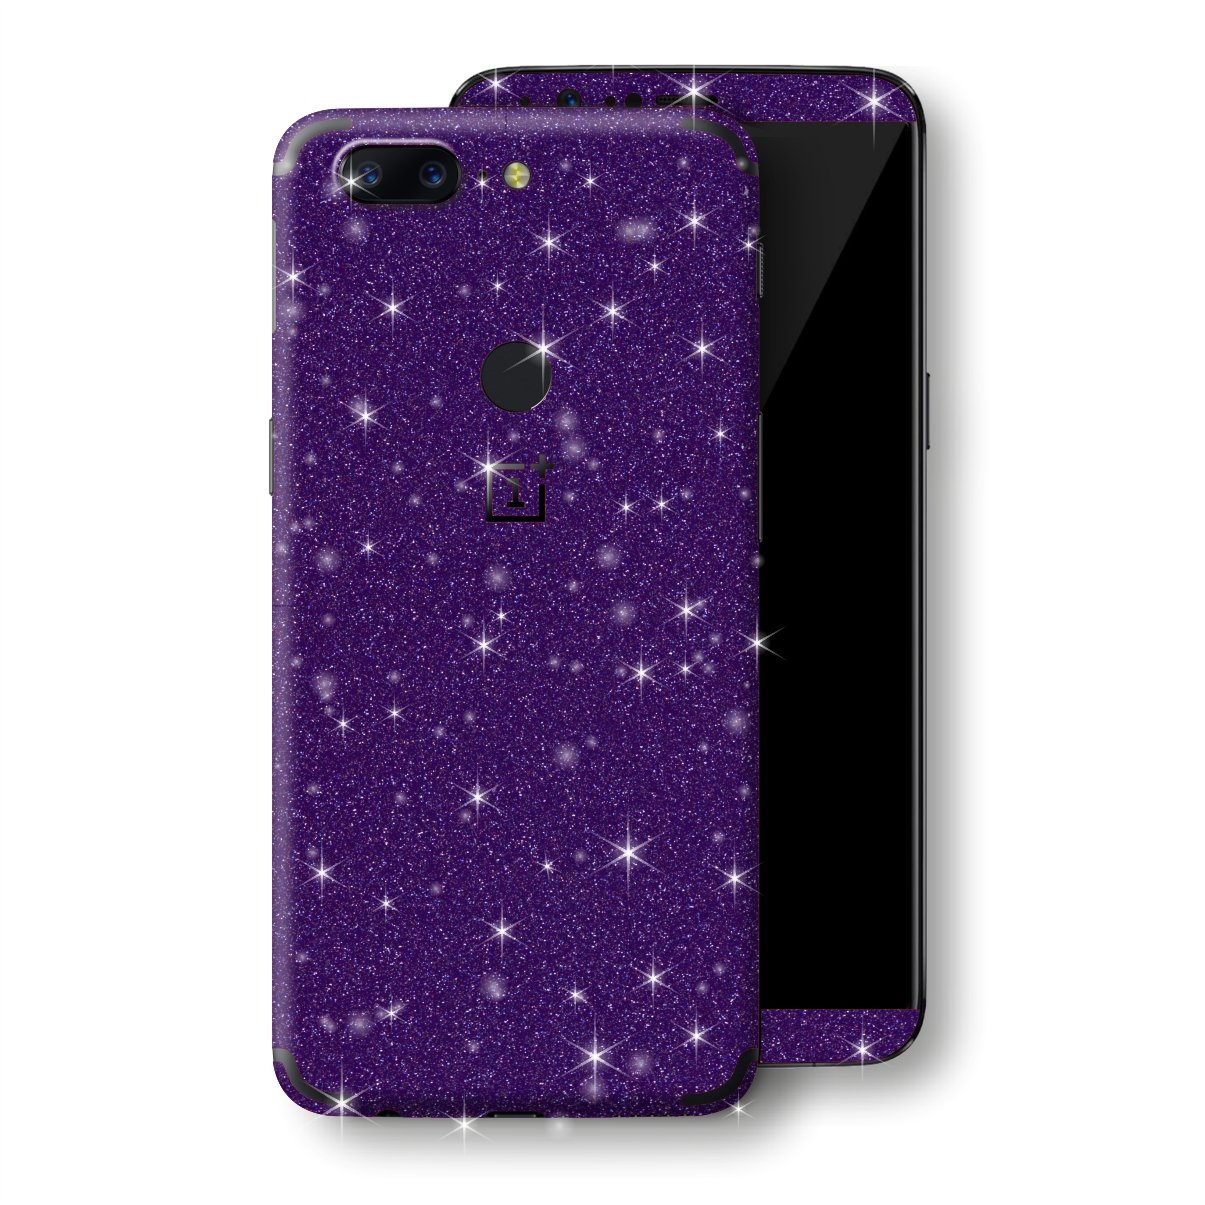 OnePlus 5T Diamond Purple Shimmering, Sparkling, Glitter Skin, Decal, Wrap, Protector, Cover by EasySkinz | EasySkinz.com